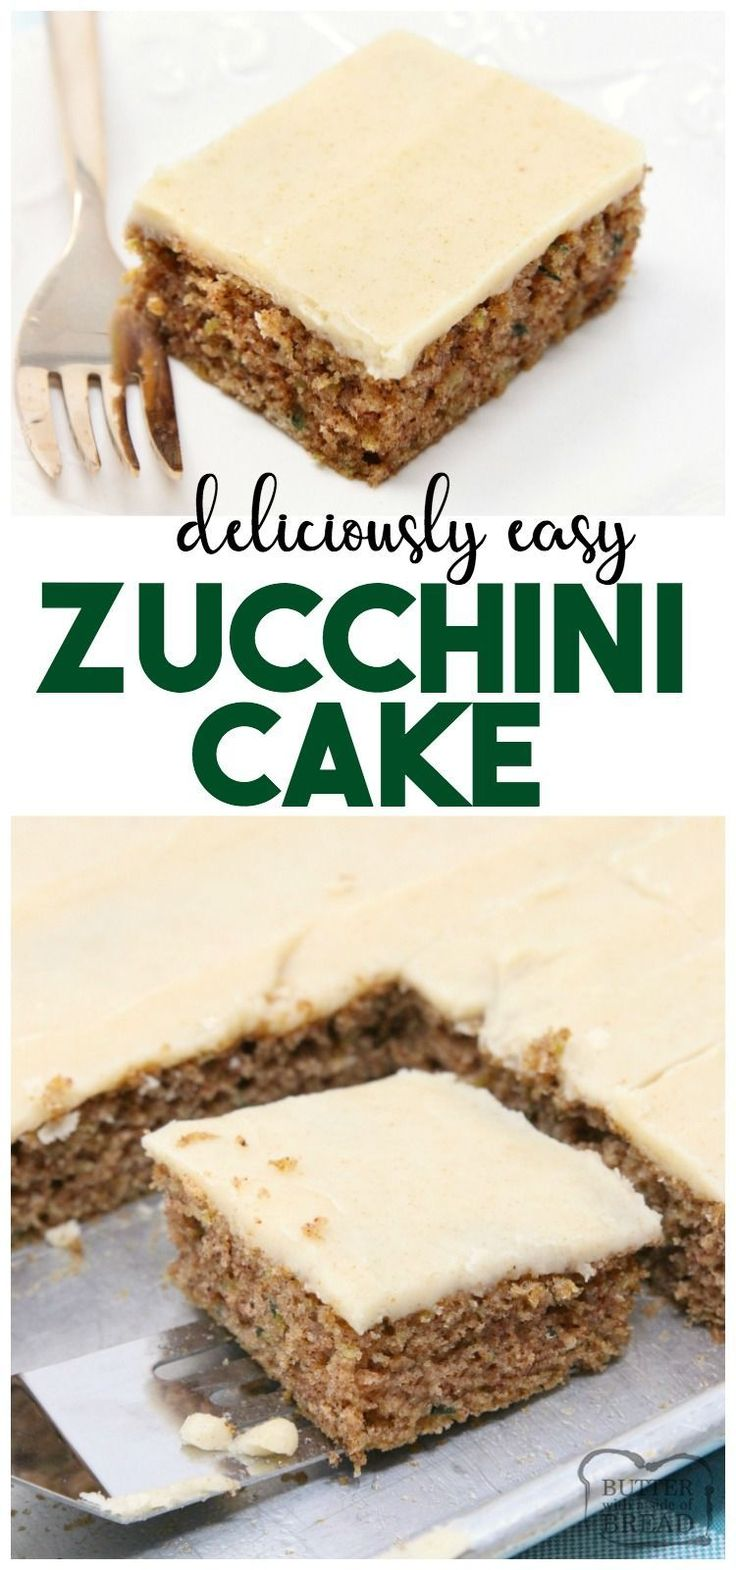 ***Easy Zucchini Cake with Cream Cheese Frosting ~ made with freshly grated zucchini and a lovely blend of spices to create a perfectly sweet, simple Zucchini Cake. Sheet cake instructions included as well!